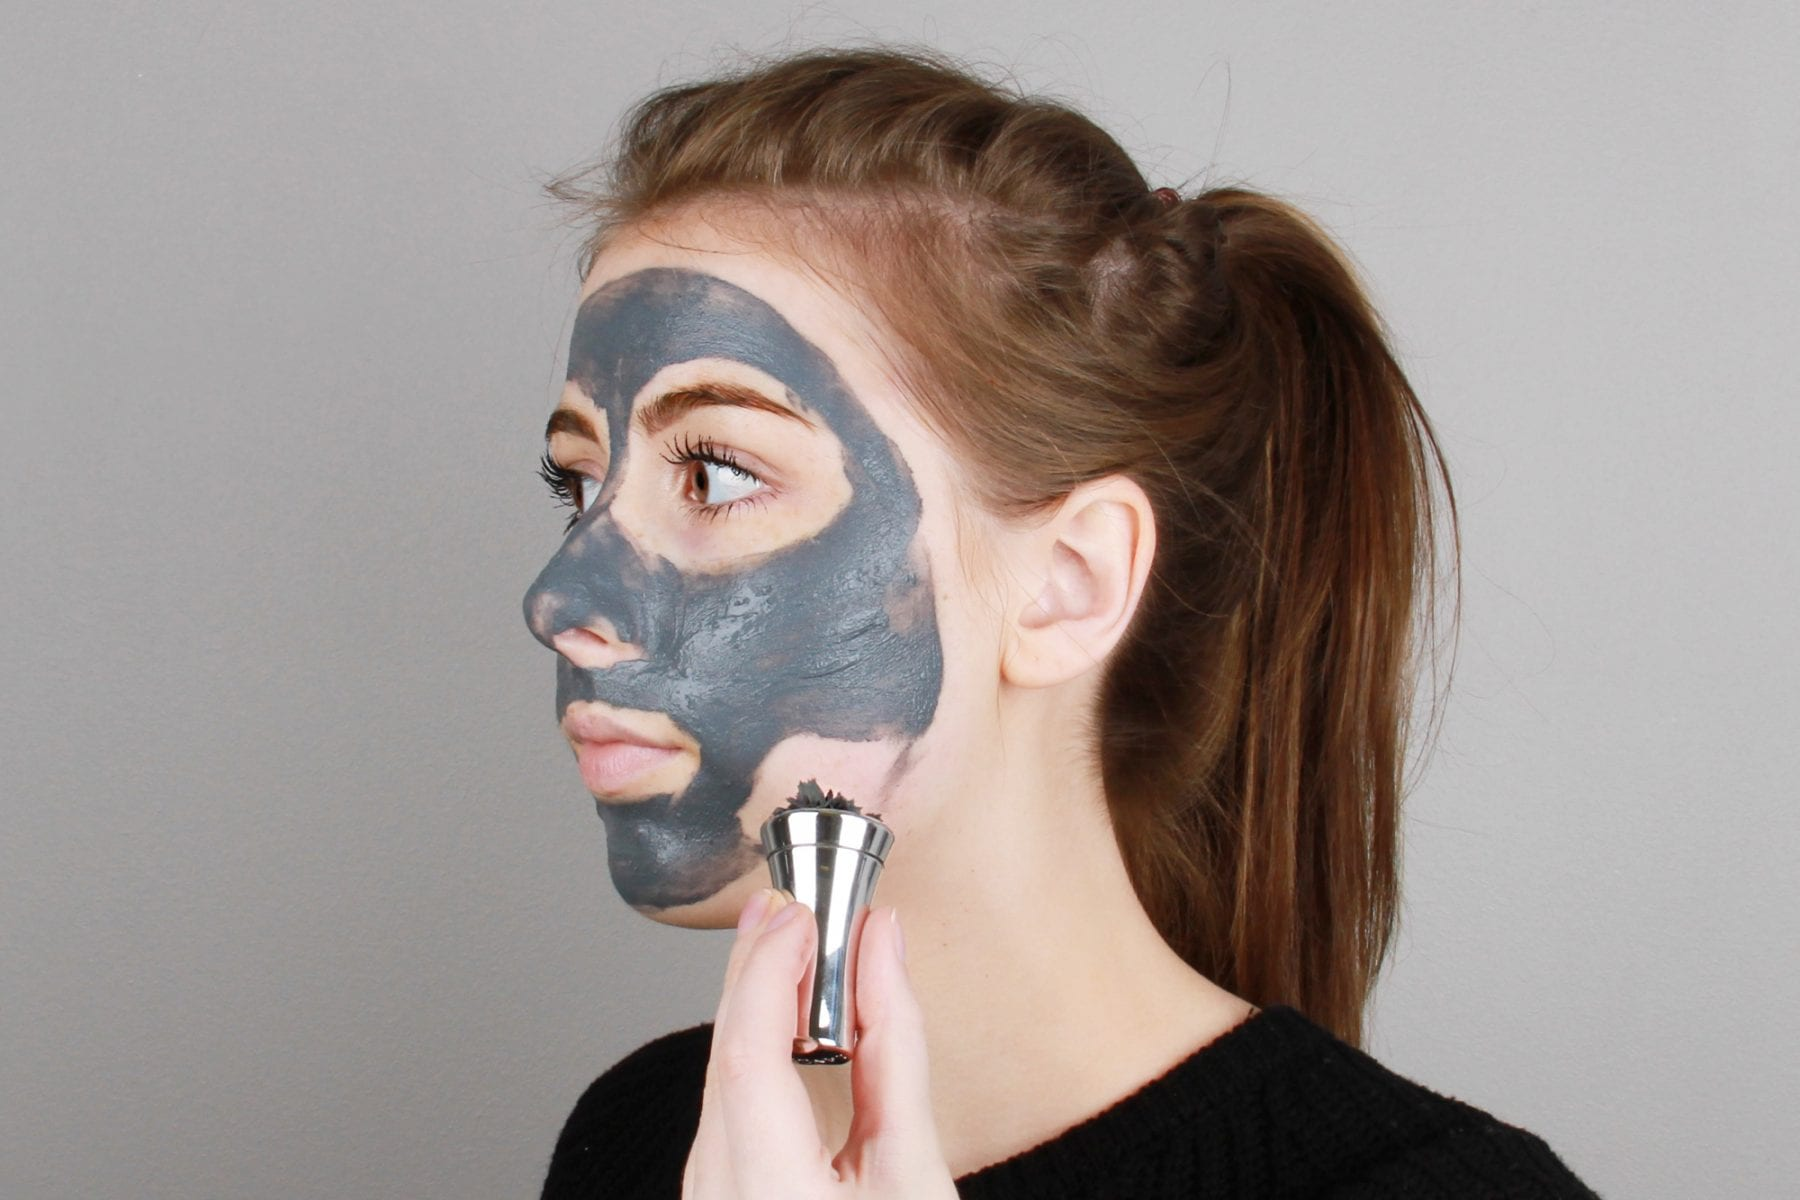 From Magnets To Rubber, Meet The New Face Masks On The Block